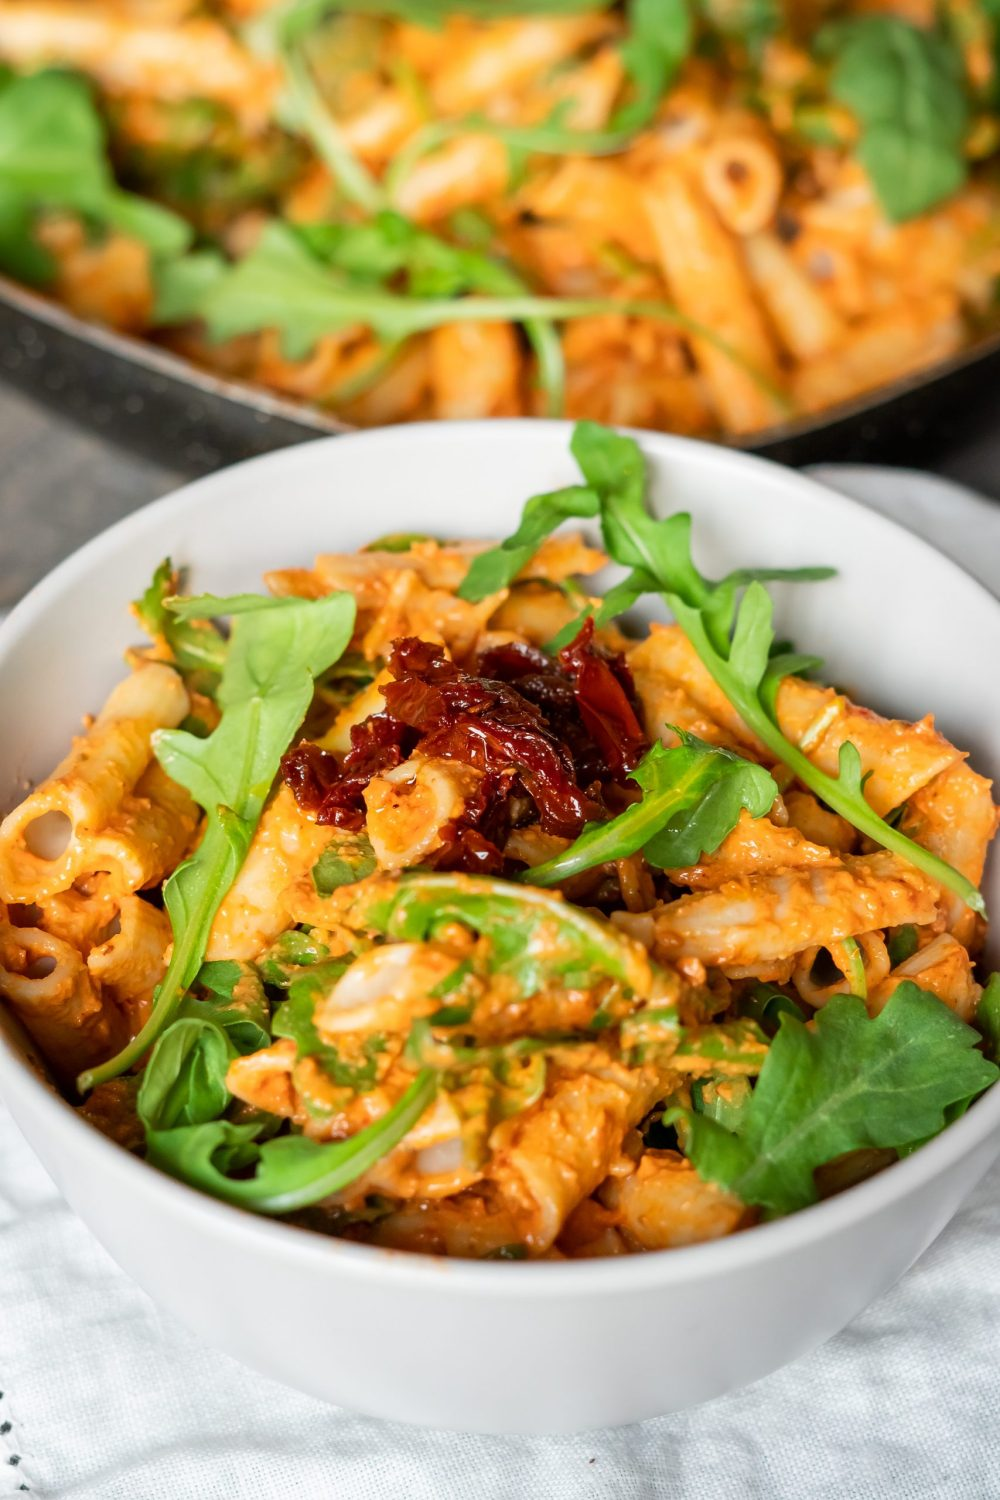 Creamy sun-dried tomato pasta in a bowl